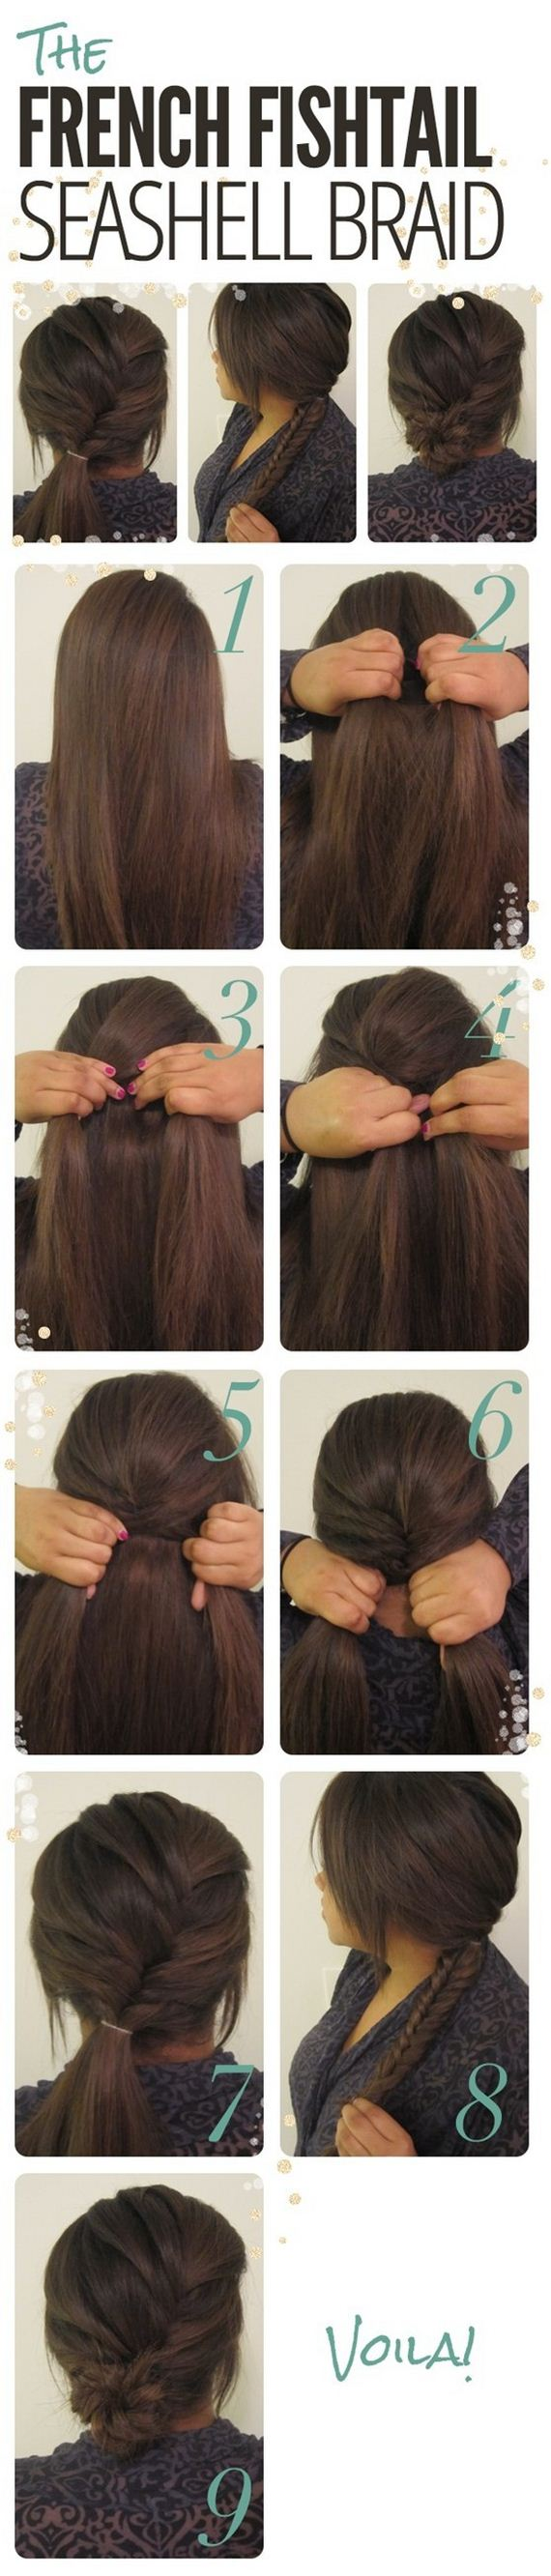 02-Braided-Updo-Hairstyles